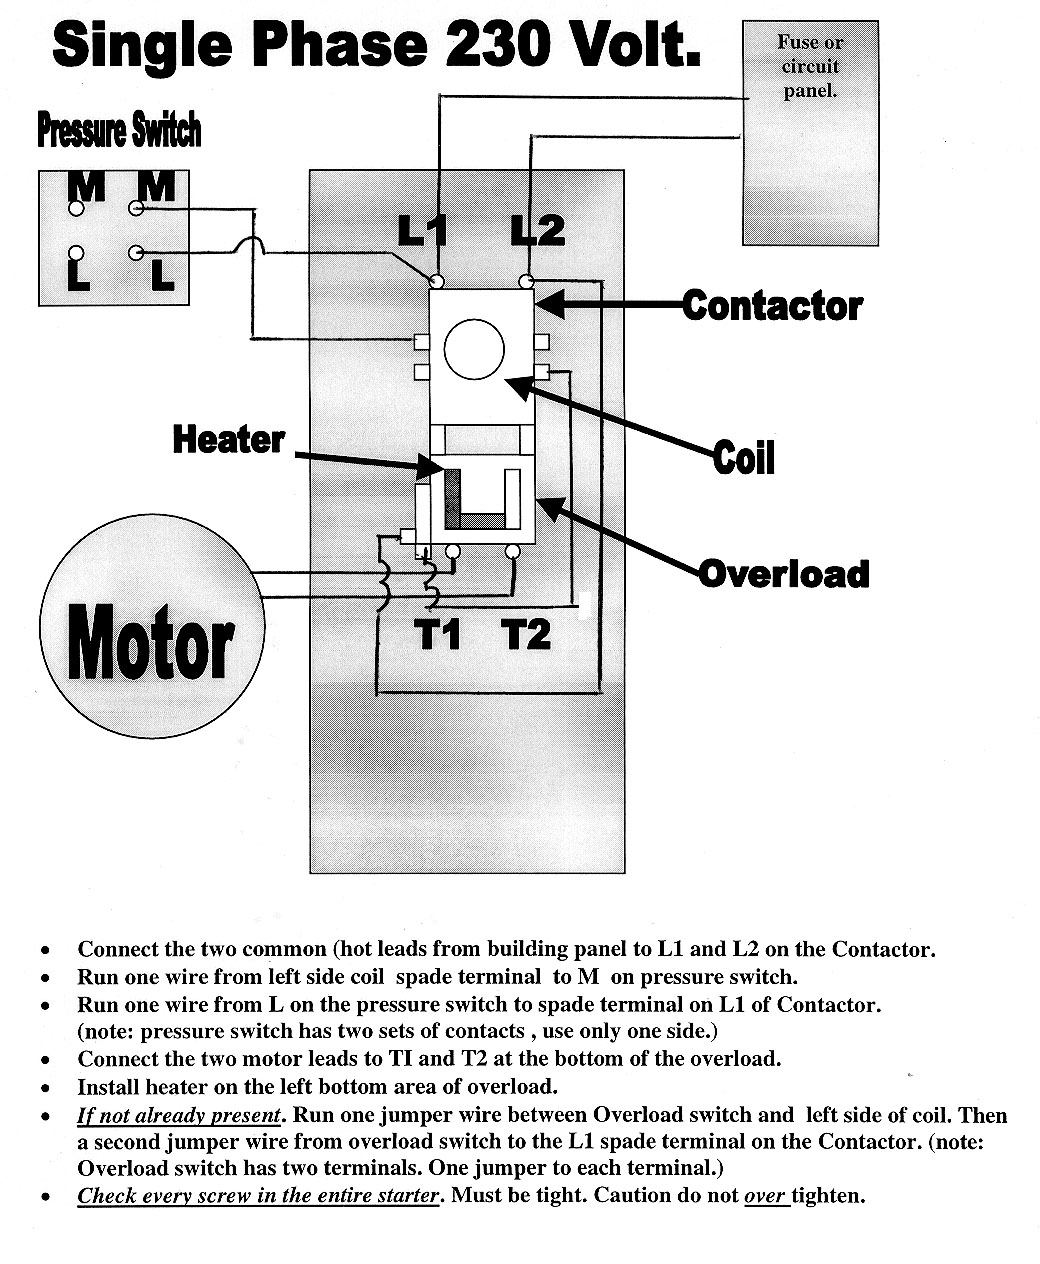 Wiring 220 Single Phase Heater - Wiring Diagram Online on 3 phase converter diagram, 3 phase block diagram, 3 phase relay, 3 phase coil diagram, 3 phase generator diagram, 3 phase electricity diagram, 3 phase connector diagram, 3 phase schematic diagrams, 3 phase wire, 3 phase power, 3 phase motor connection diagram, 3 phase inverter diagram, 3 phase regulator, 3 phase electric panel diagrams, ceiling fan installation diagram, 3 phase circuit, 3 phase cable, 3 phase transformers diagram, 3 phase plug, 3 phase thermostat diagram,